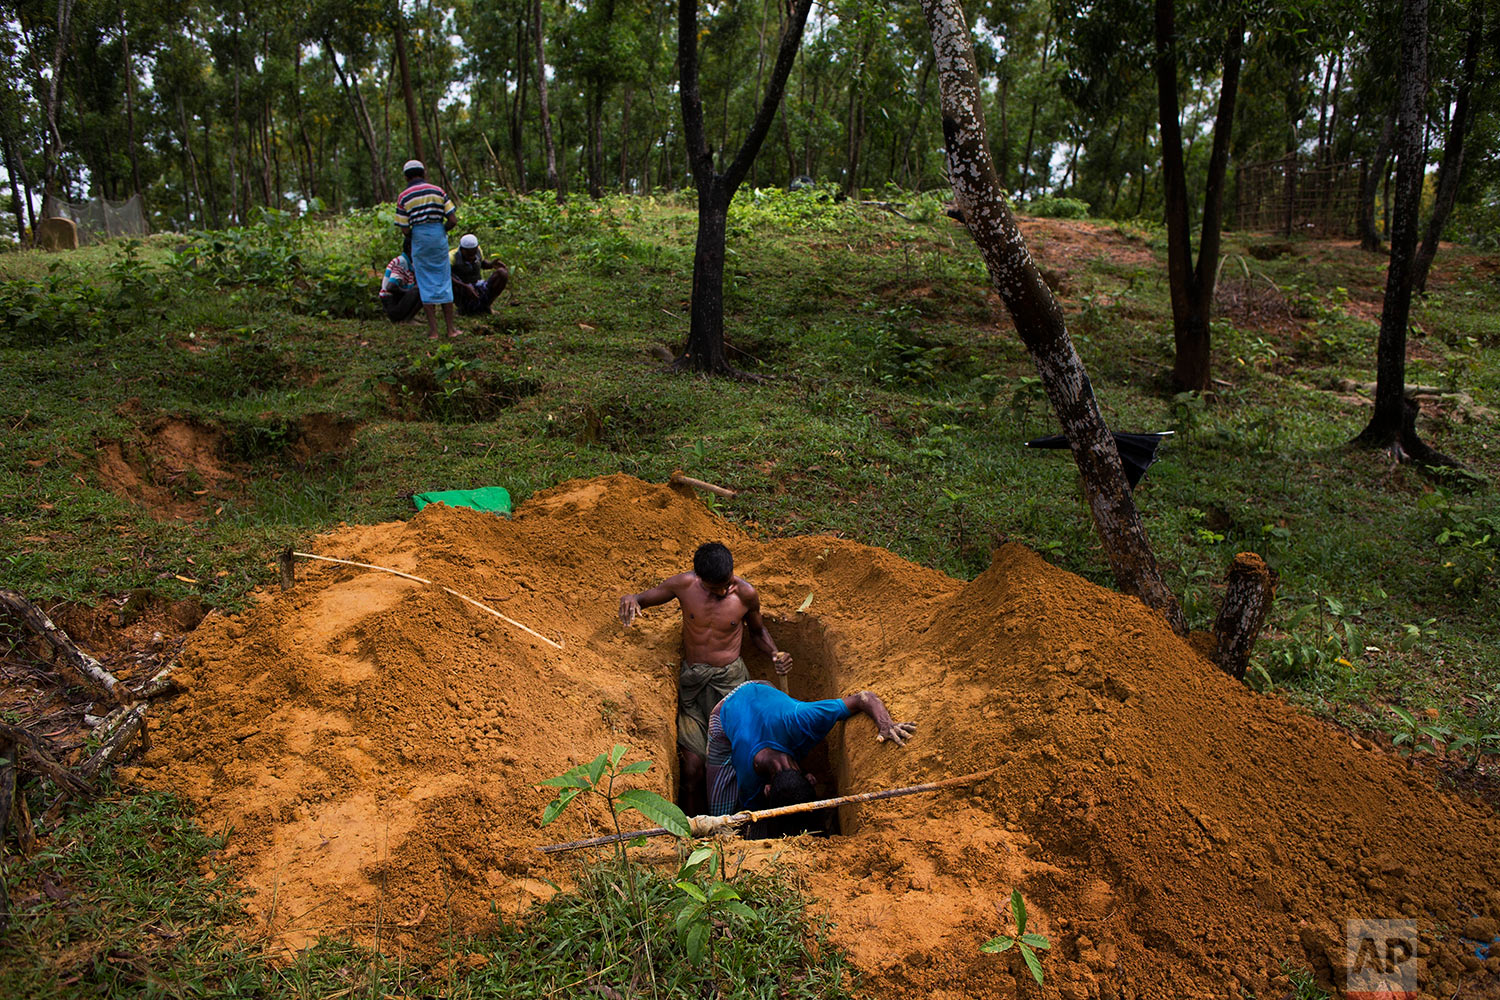 Rohingya men dig a grave in Kutupalong's refugee camp's cemetery, Bangladesh, Friday, Sept. 8, 2017. (AP Photo/Bernat Armangue)